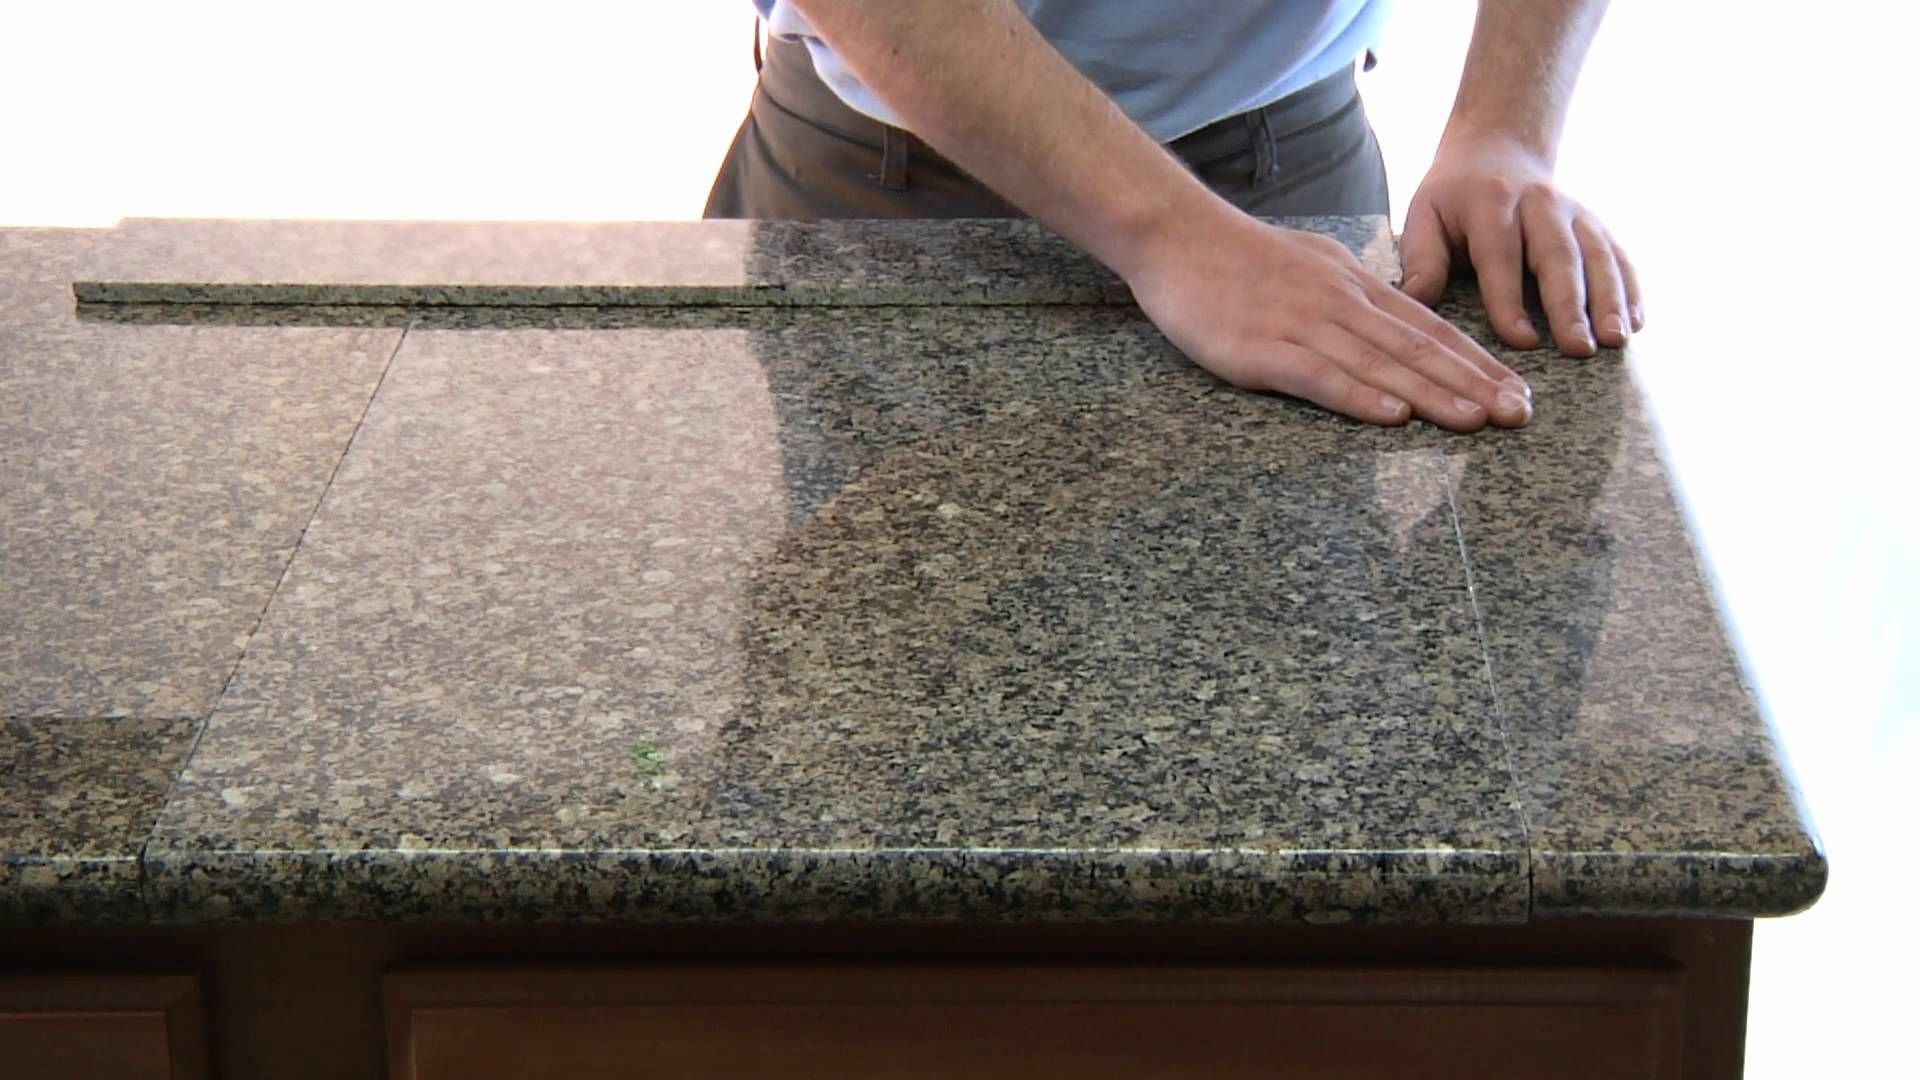 Refinish Kitchen Countertop Cabinets Lazy Granite Tile For Countertops Is A Low Cost ...